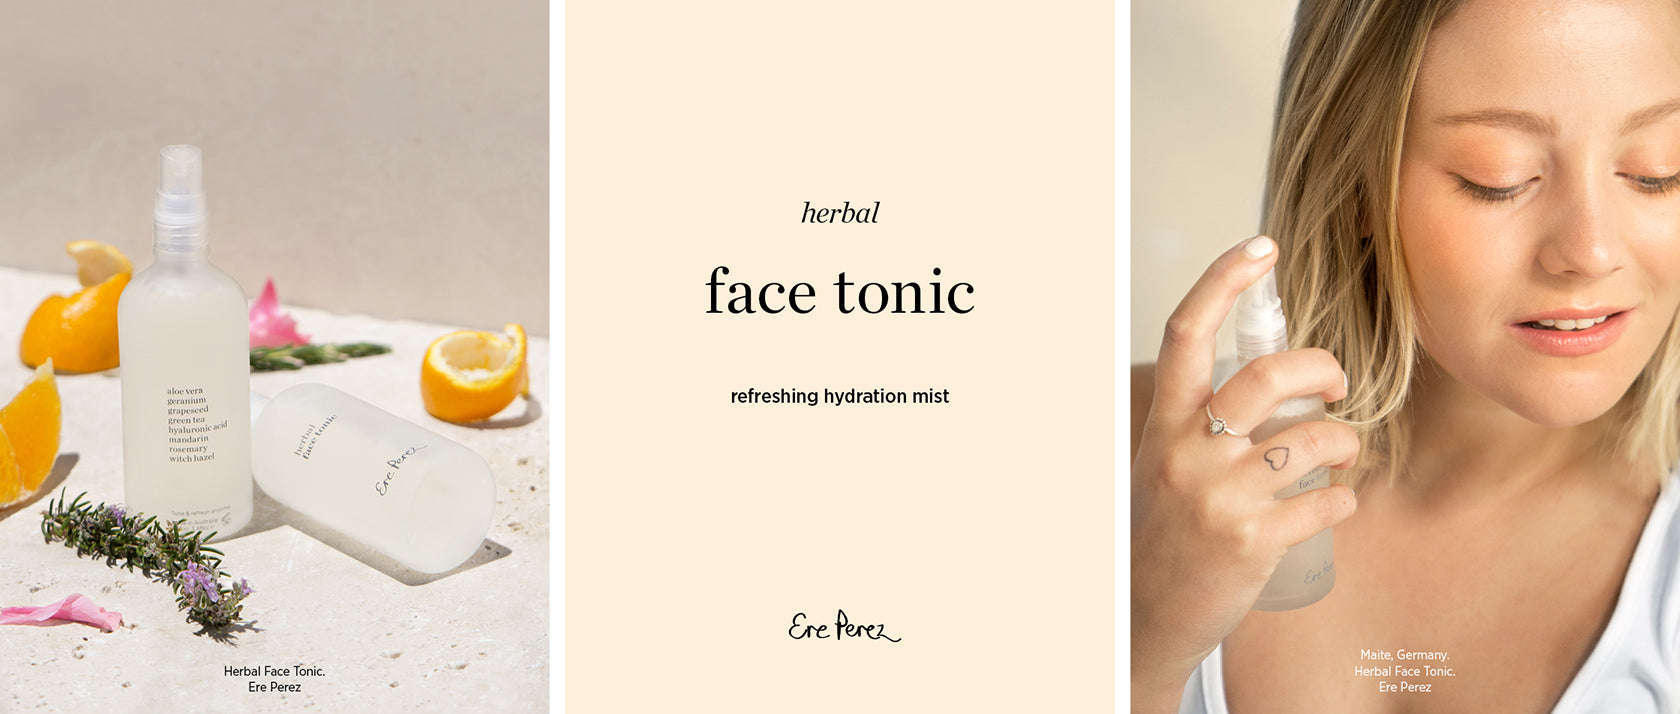 EP_Blog_Skincare_Images_2